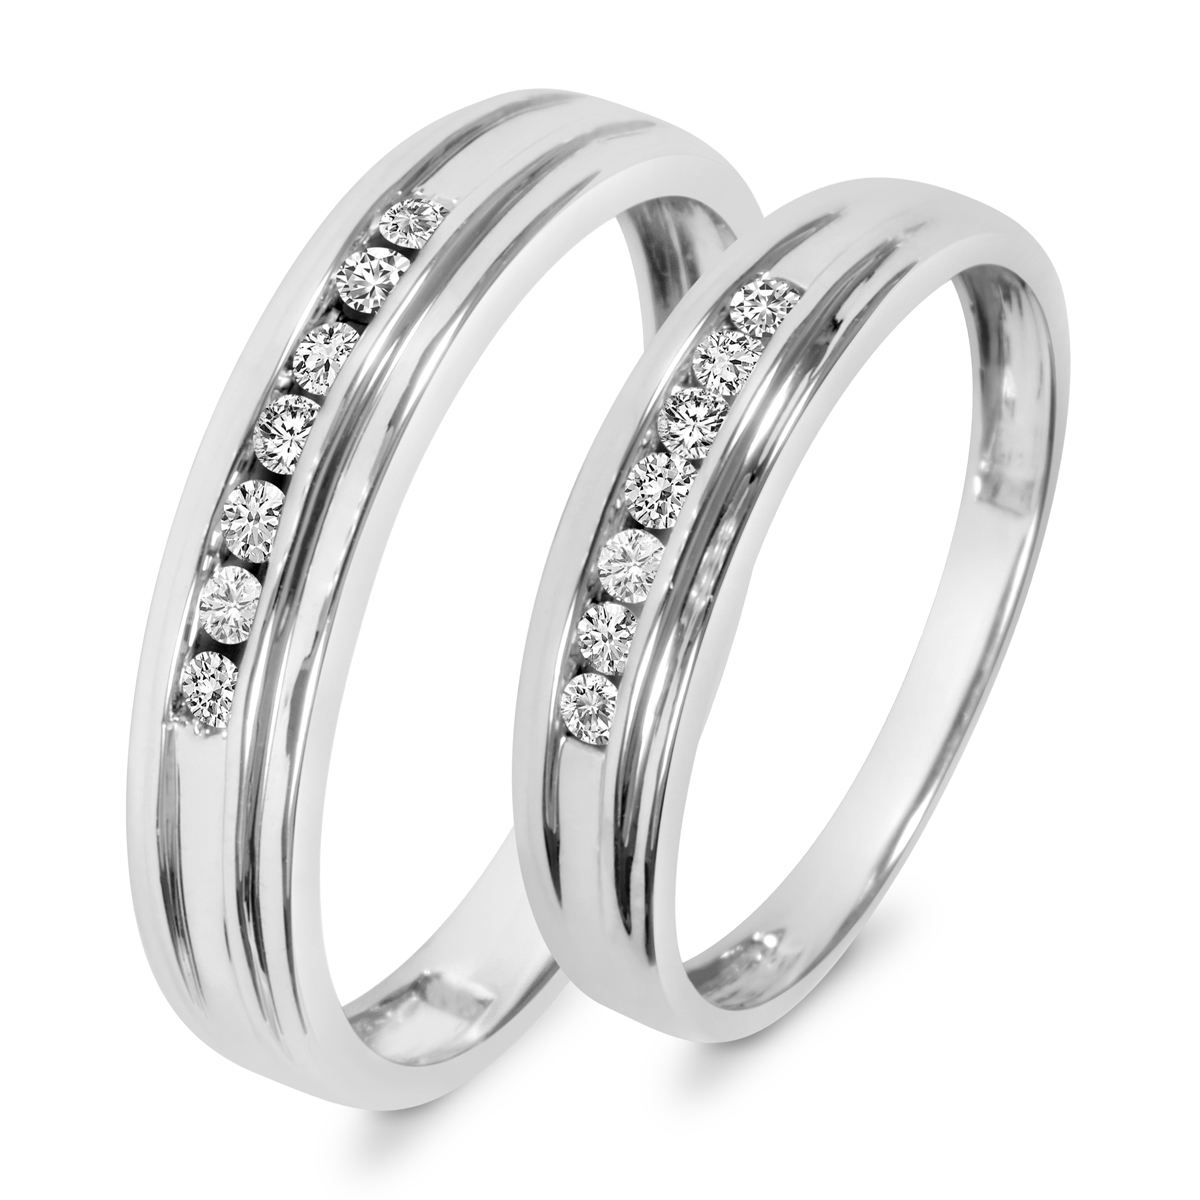 1 1 3 ct t w diamond his and hers wedding band set 10k